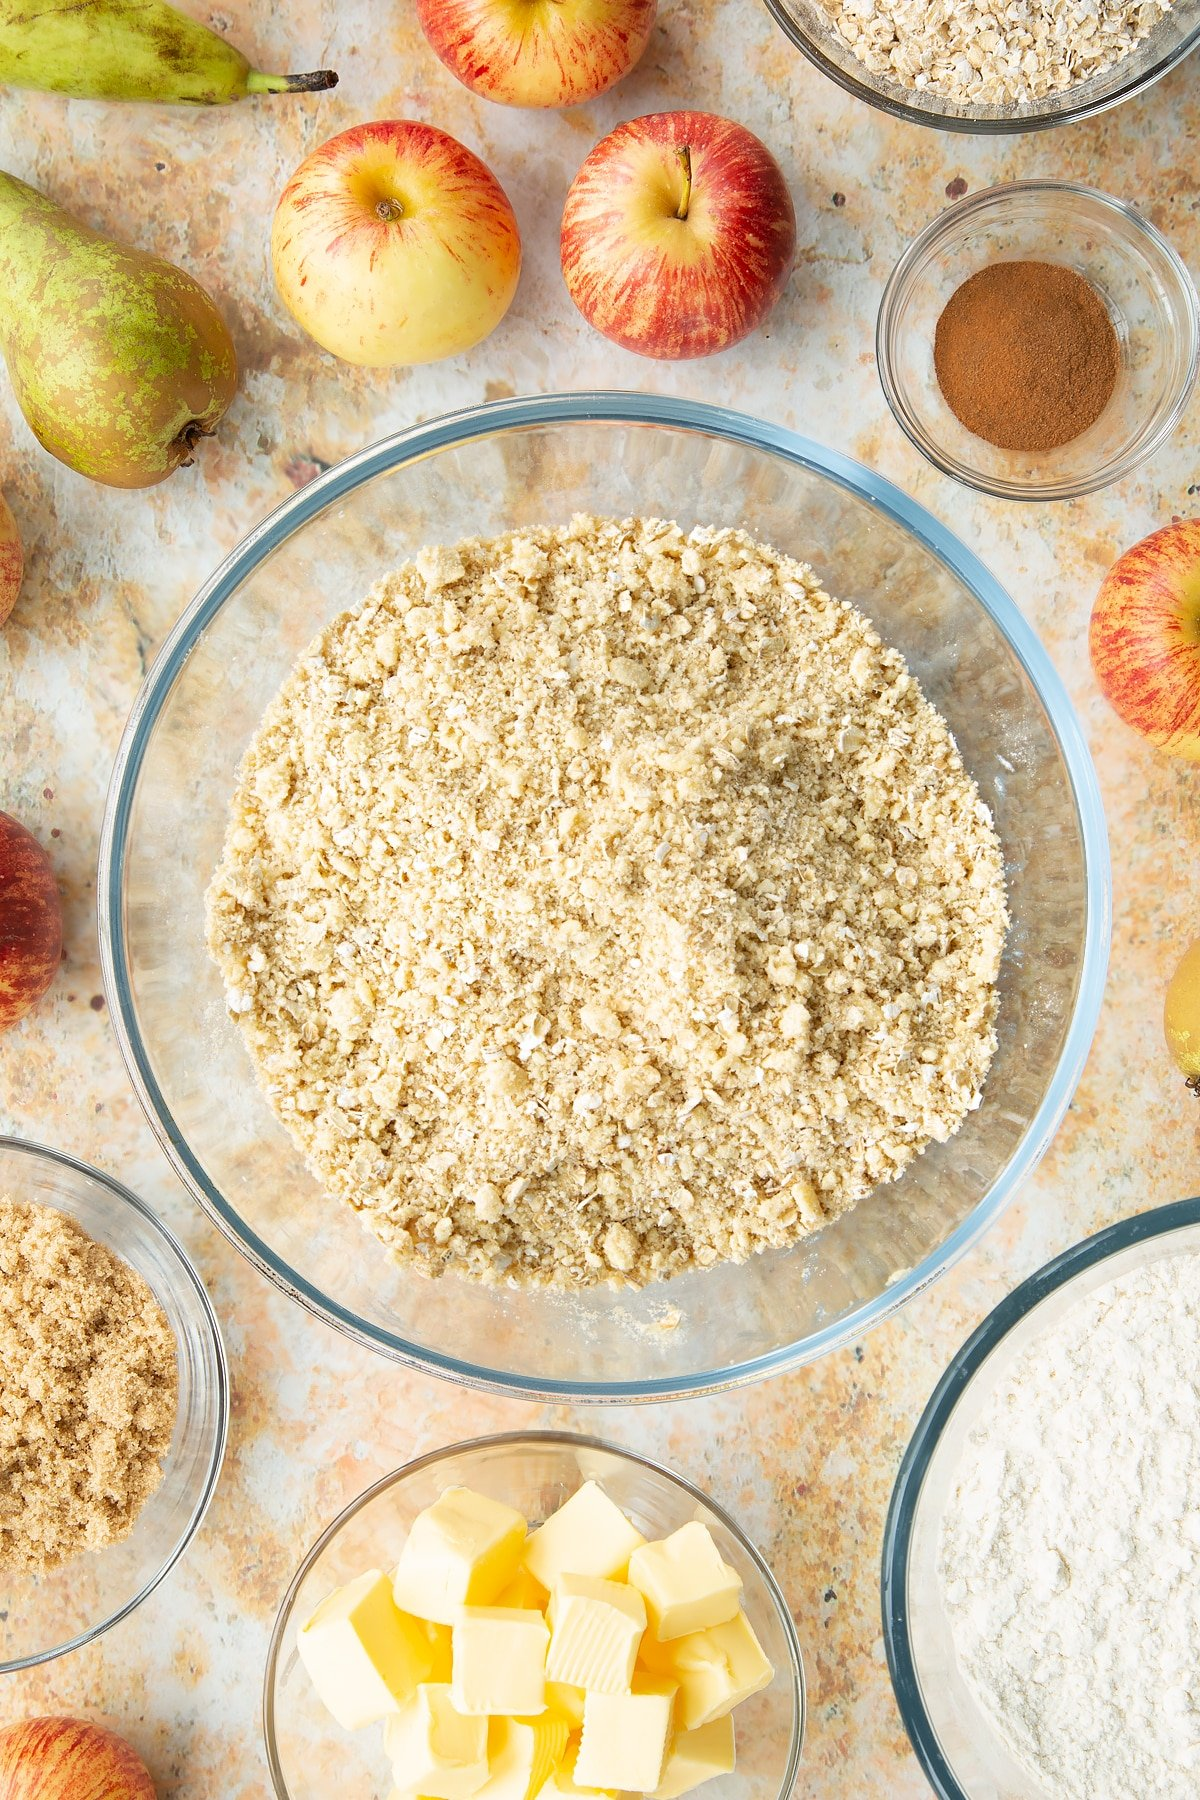 Flour, butter oats and sugar mixed together in a mixing bowl. Ingredients to make easy apple pear crumble surround the bowl.